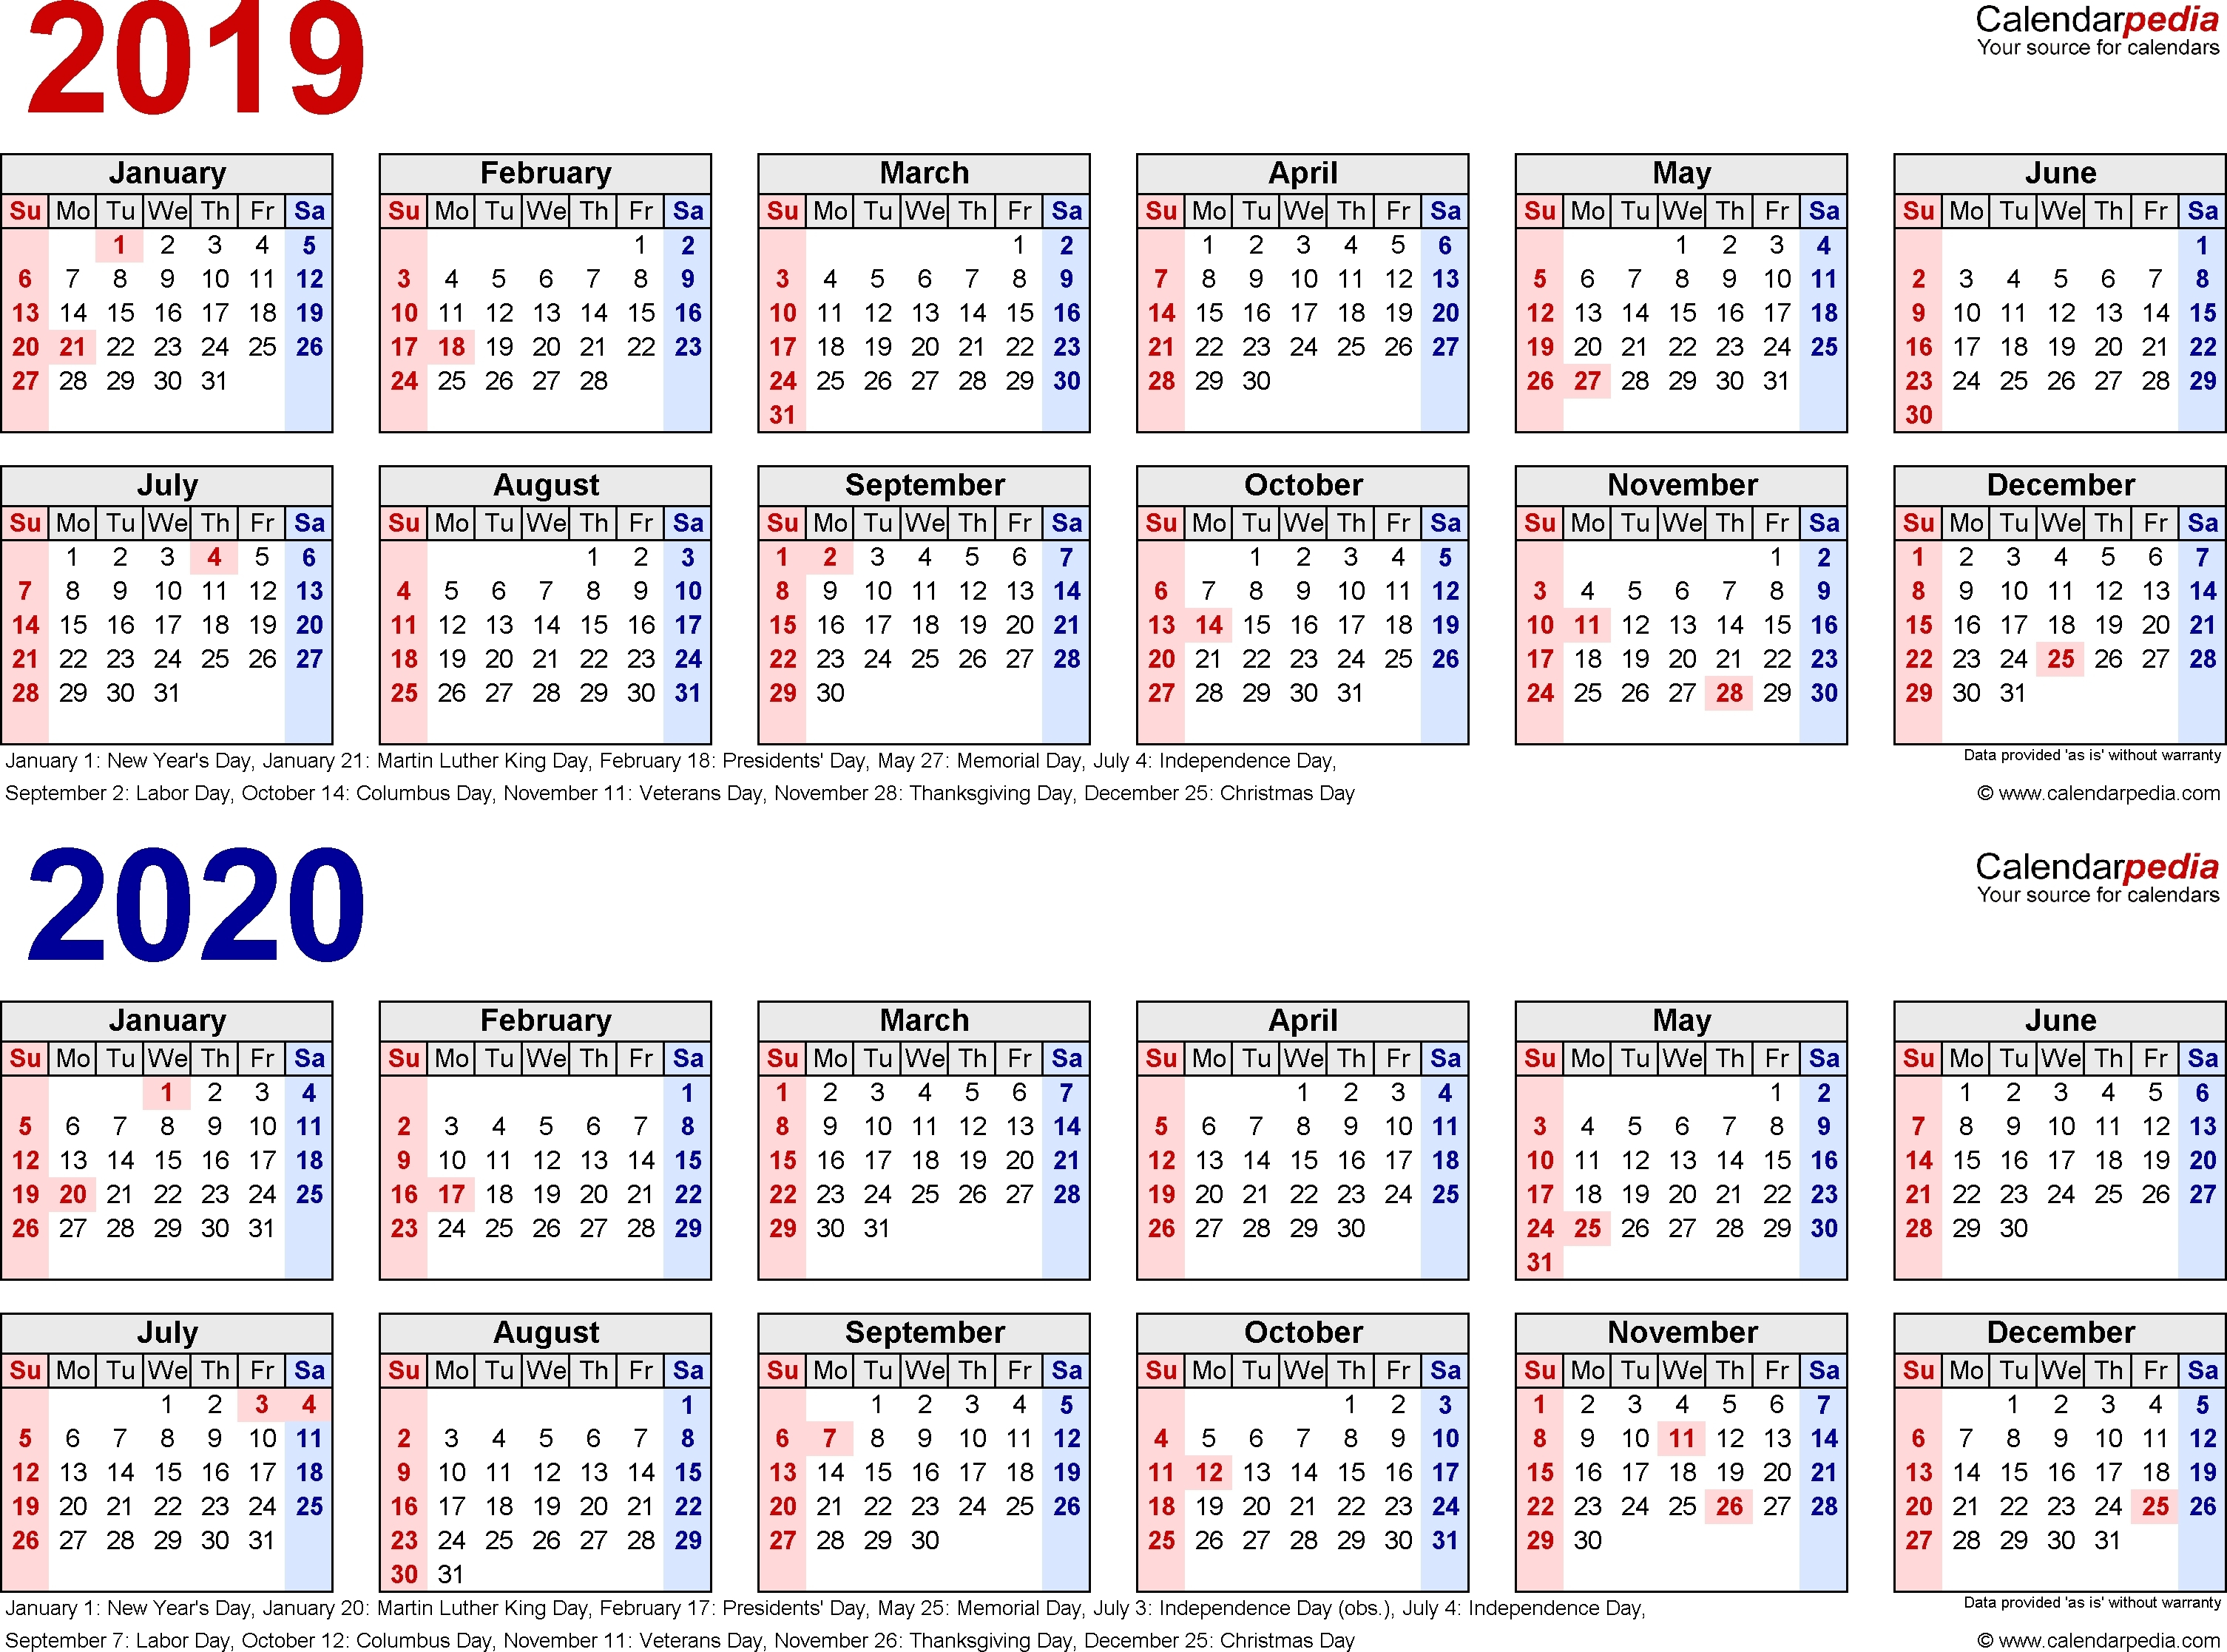 Building Calendars The Easy Way With This Script For Adobe Indesign Calendar 2019 Indesign